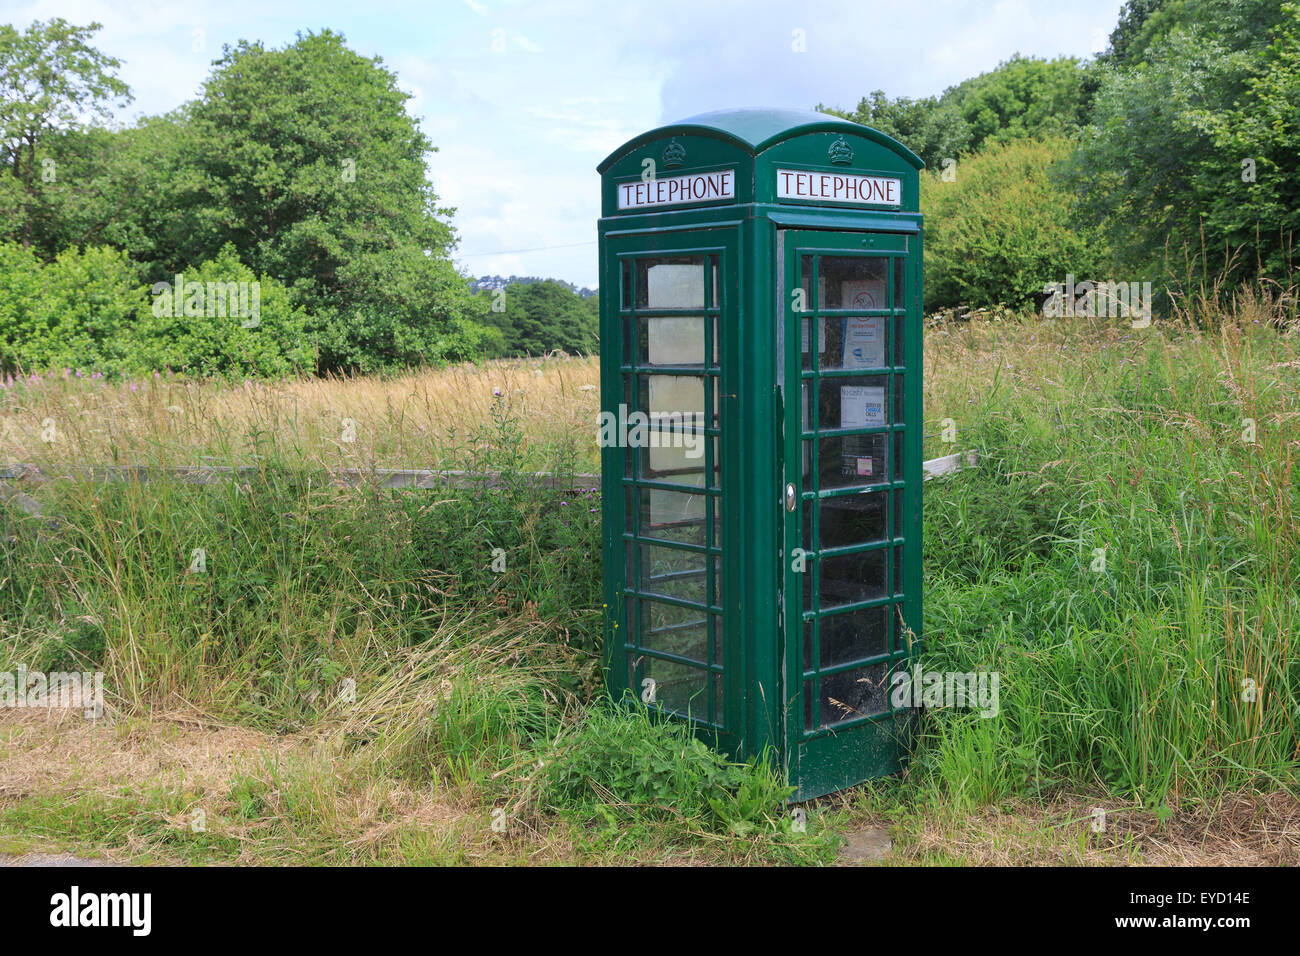 K6 telephone box, designed by Giles Gilbert Scott in 1936, painted green.  Fangdale Beck, North Yorkshire - Stock Image